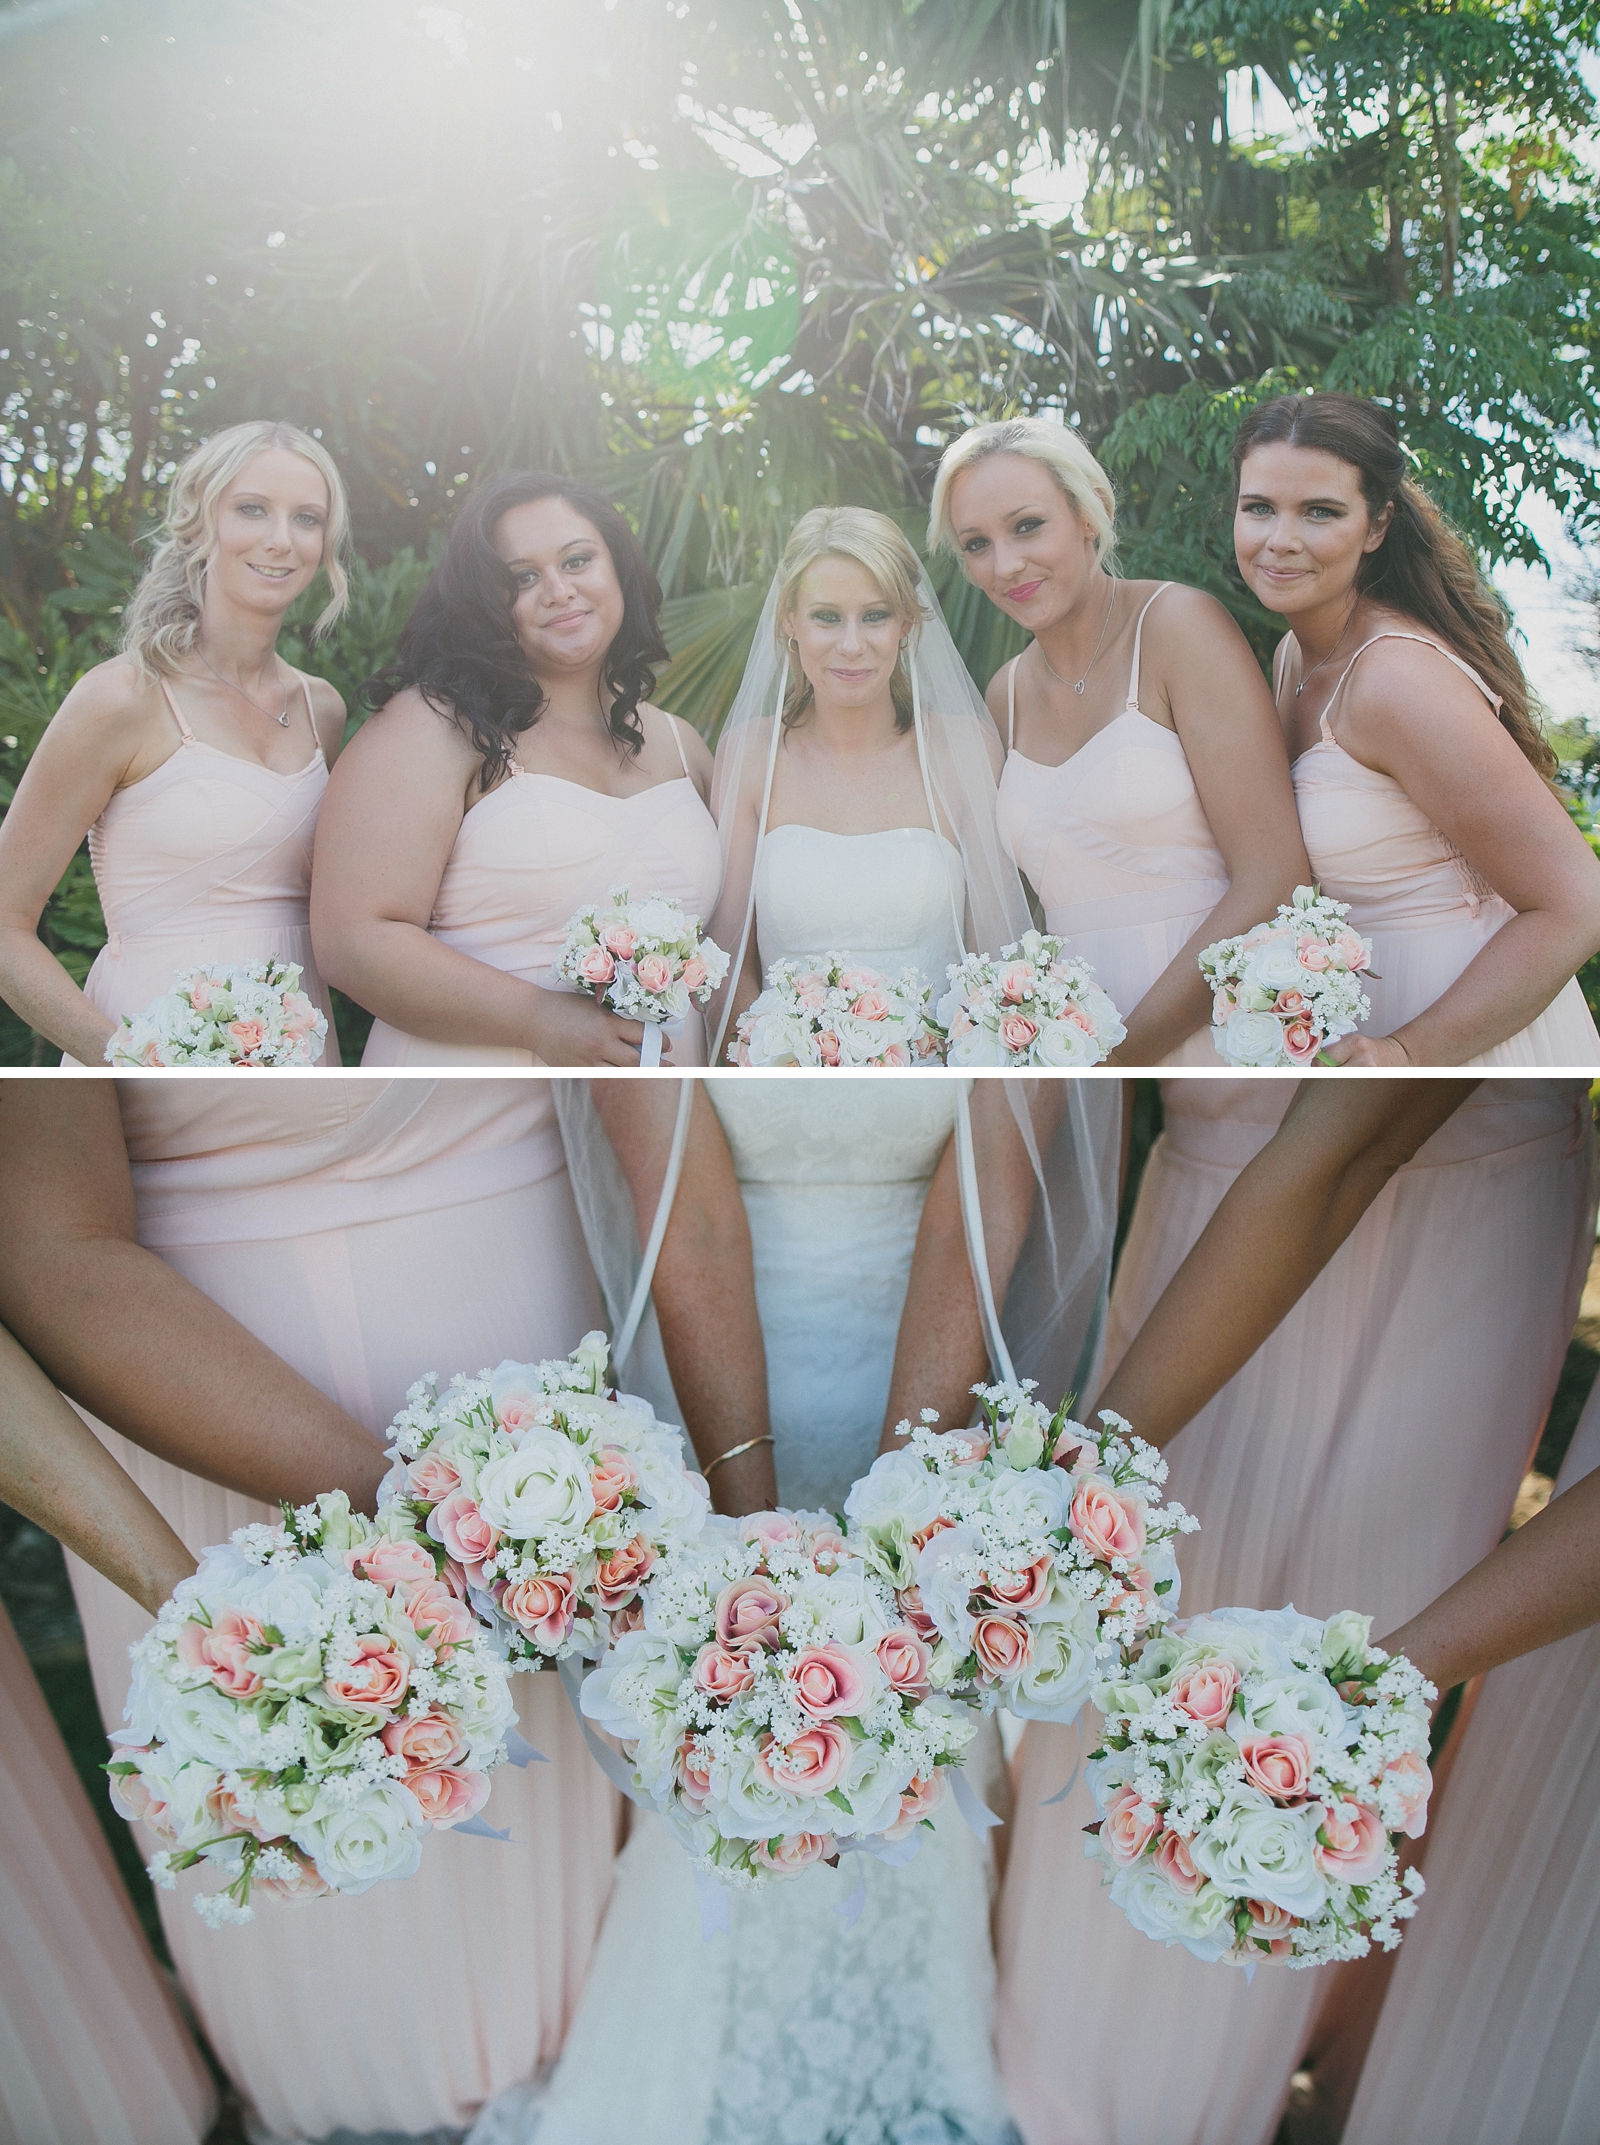 ConnorLaura_Auckland Wedding Photographer_Patty Lagera_0069.jpg